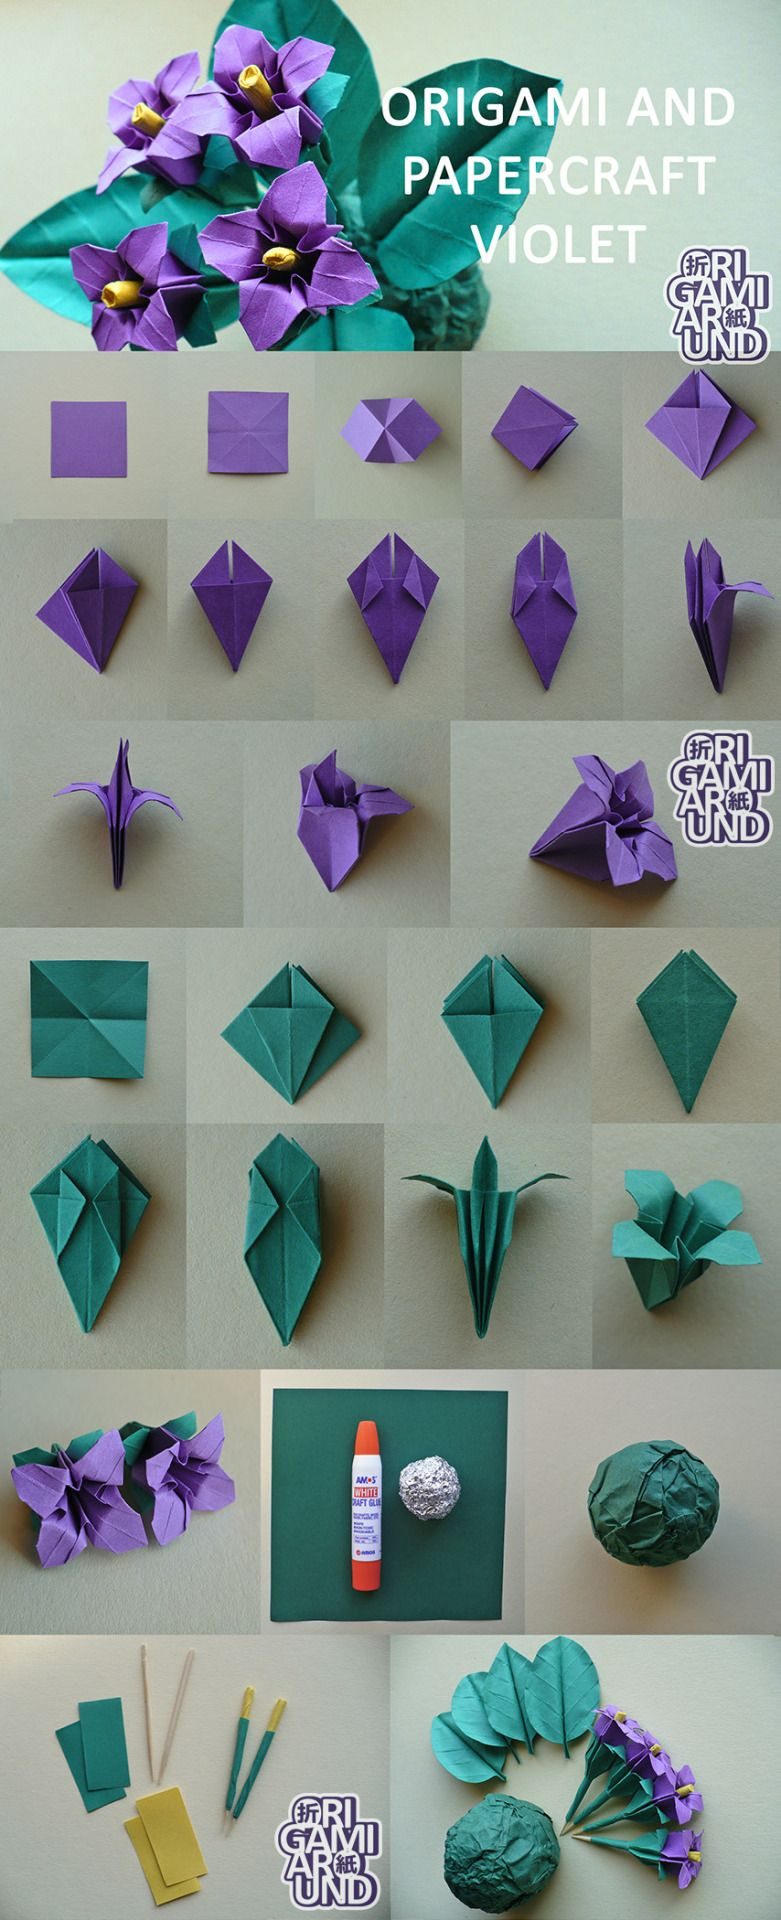 Origami violet tutorial recut making leaves yellow version origami violet tutorial recut making leaves yellow version jeuxipadfo Choice Image